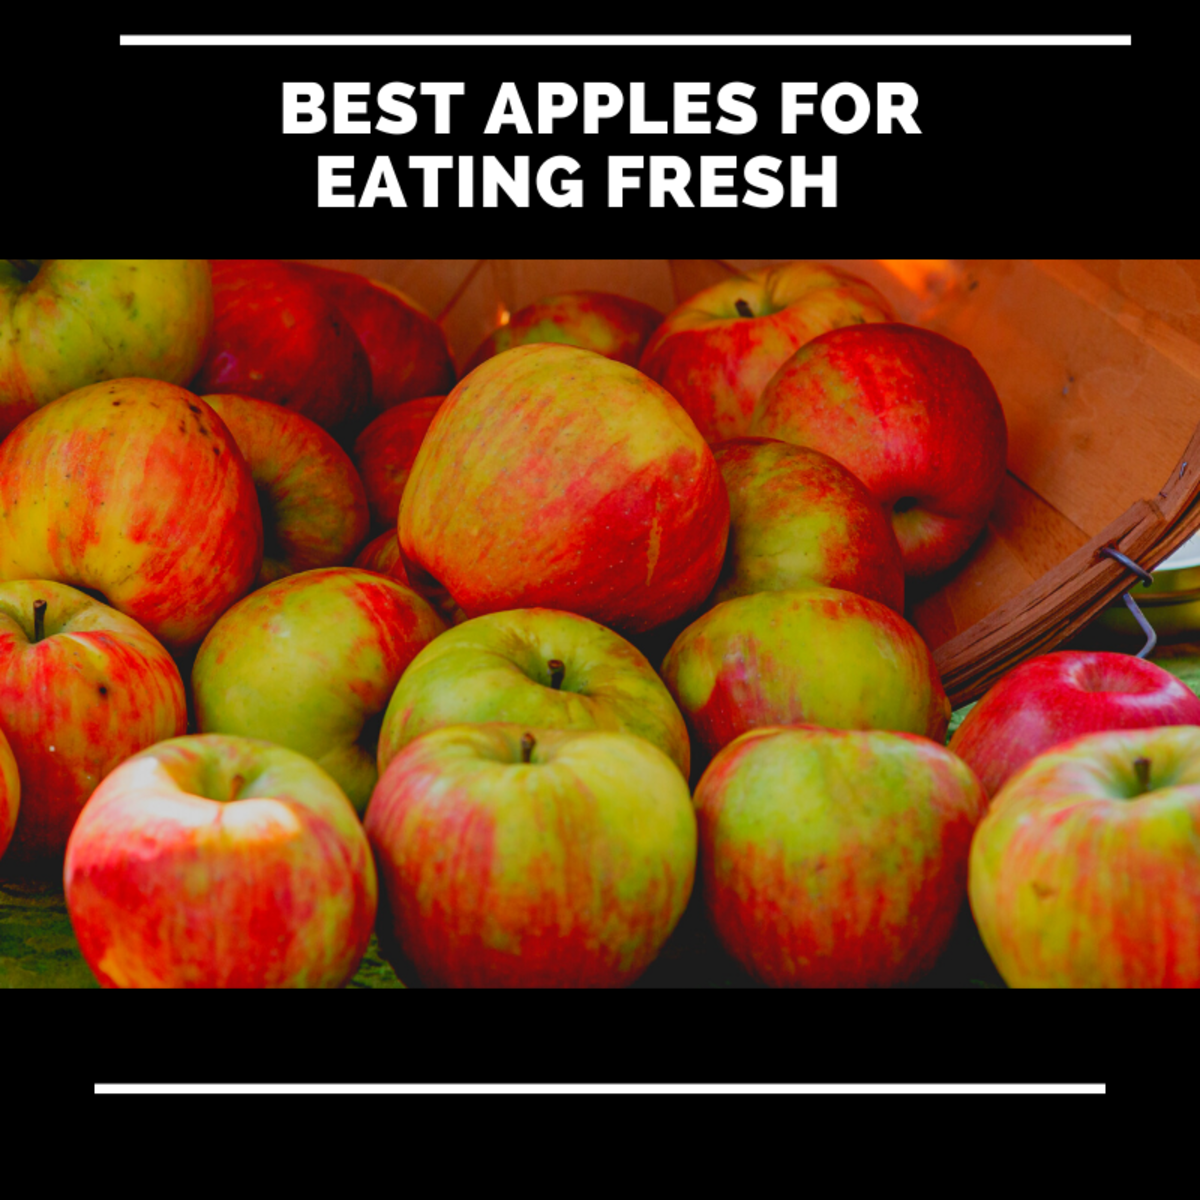 These apples are my favorites to eat and serve fresh.